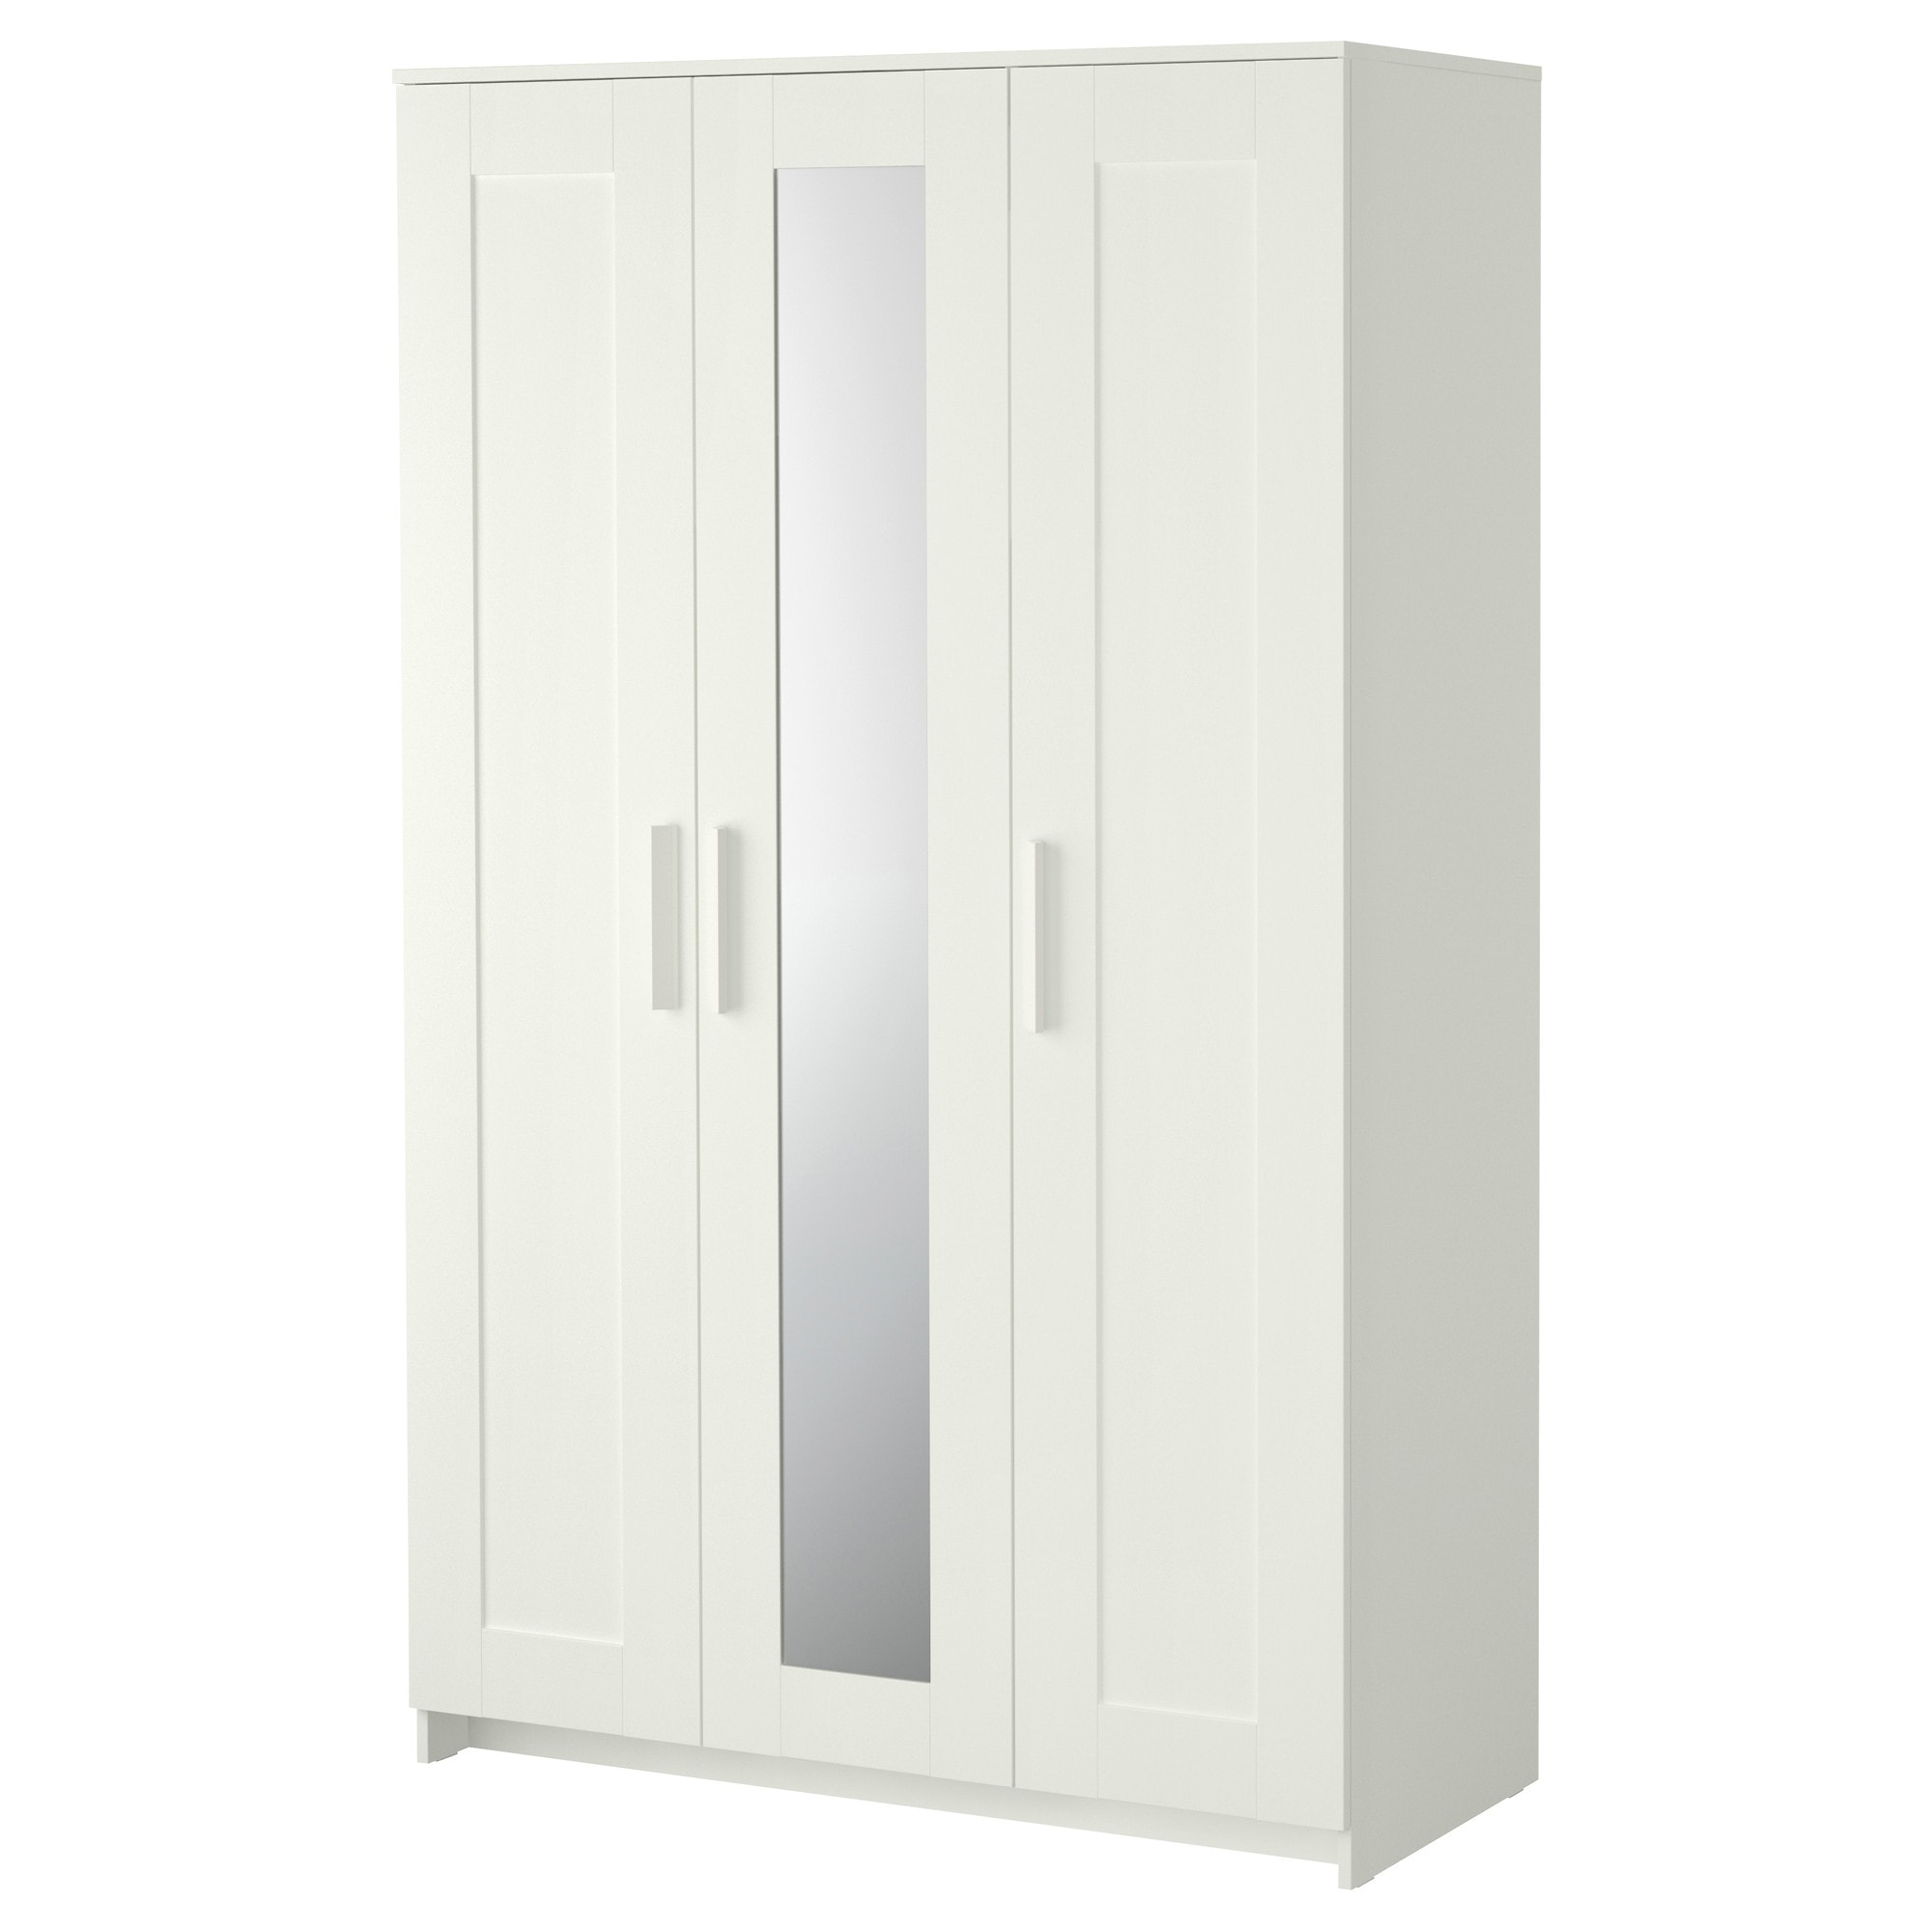 BRIMNES Wardrobe With Doors White IKEA - Ikea wardrobe